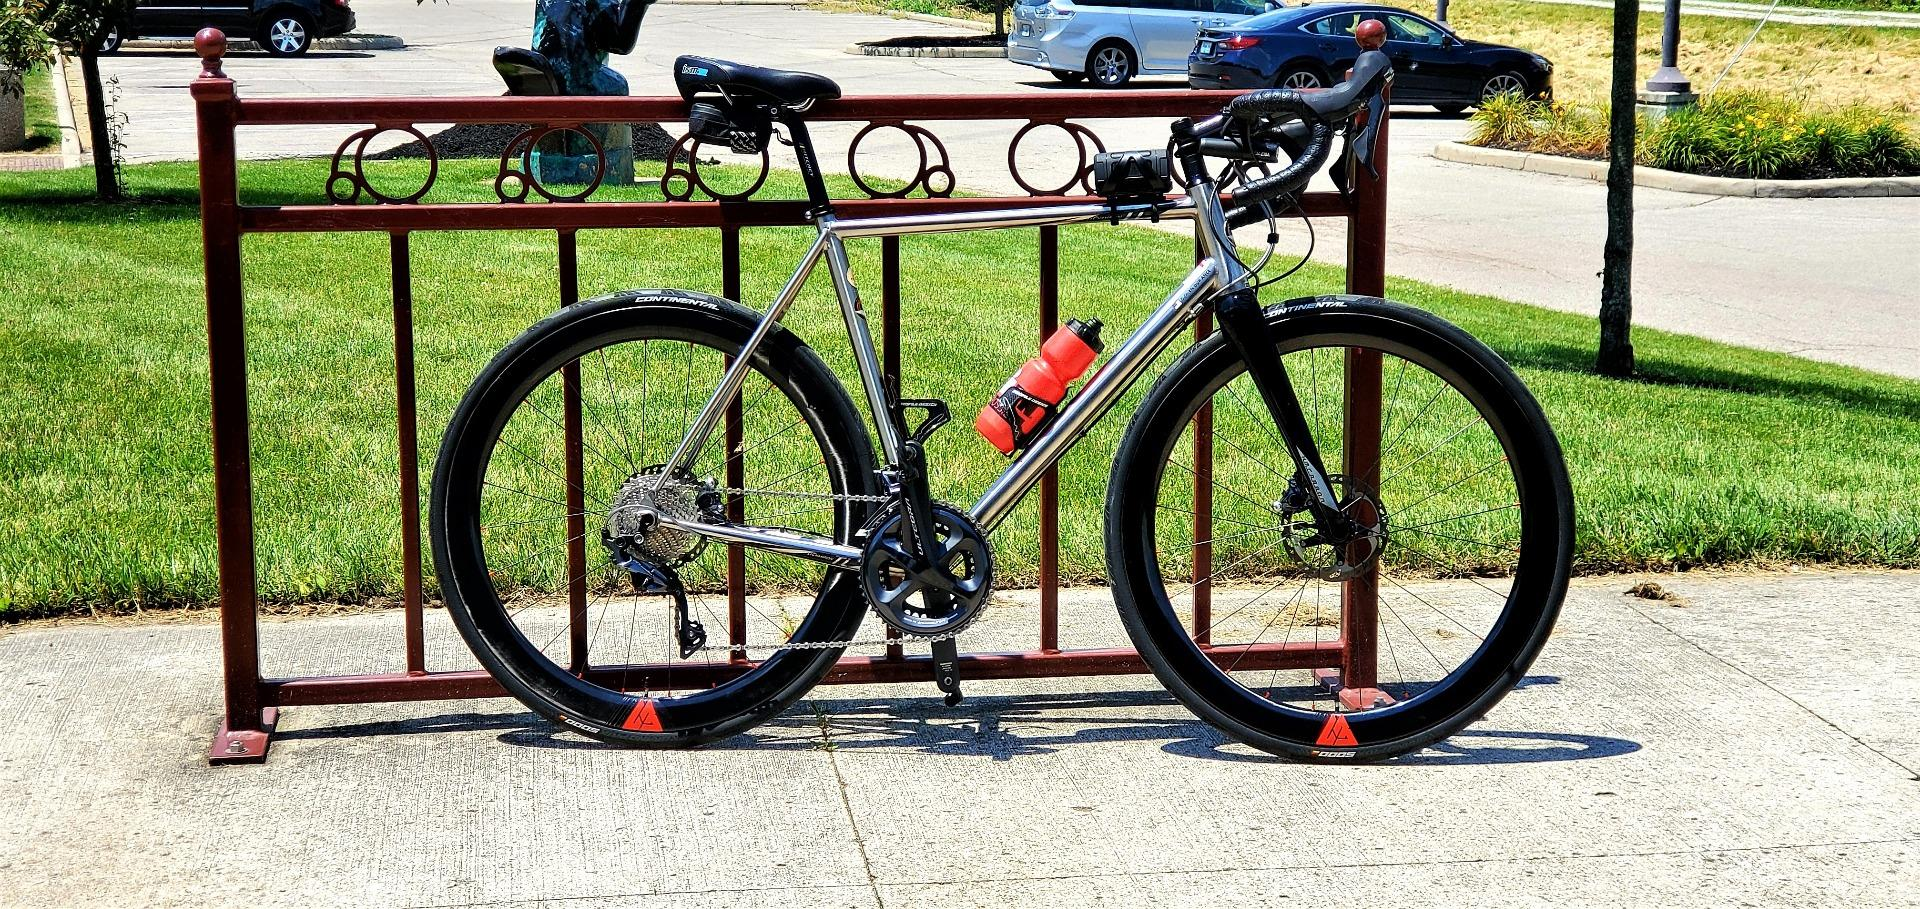 700c-carbon-fiber-wide-road-rims-with-red-valve-decals-on-GP5000-clincher-tires-with-ultegra-crankset